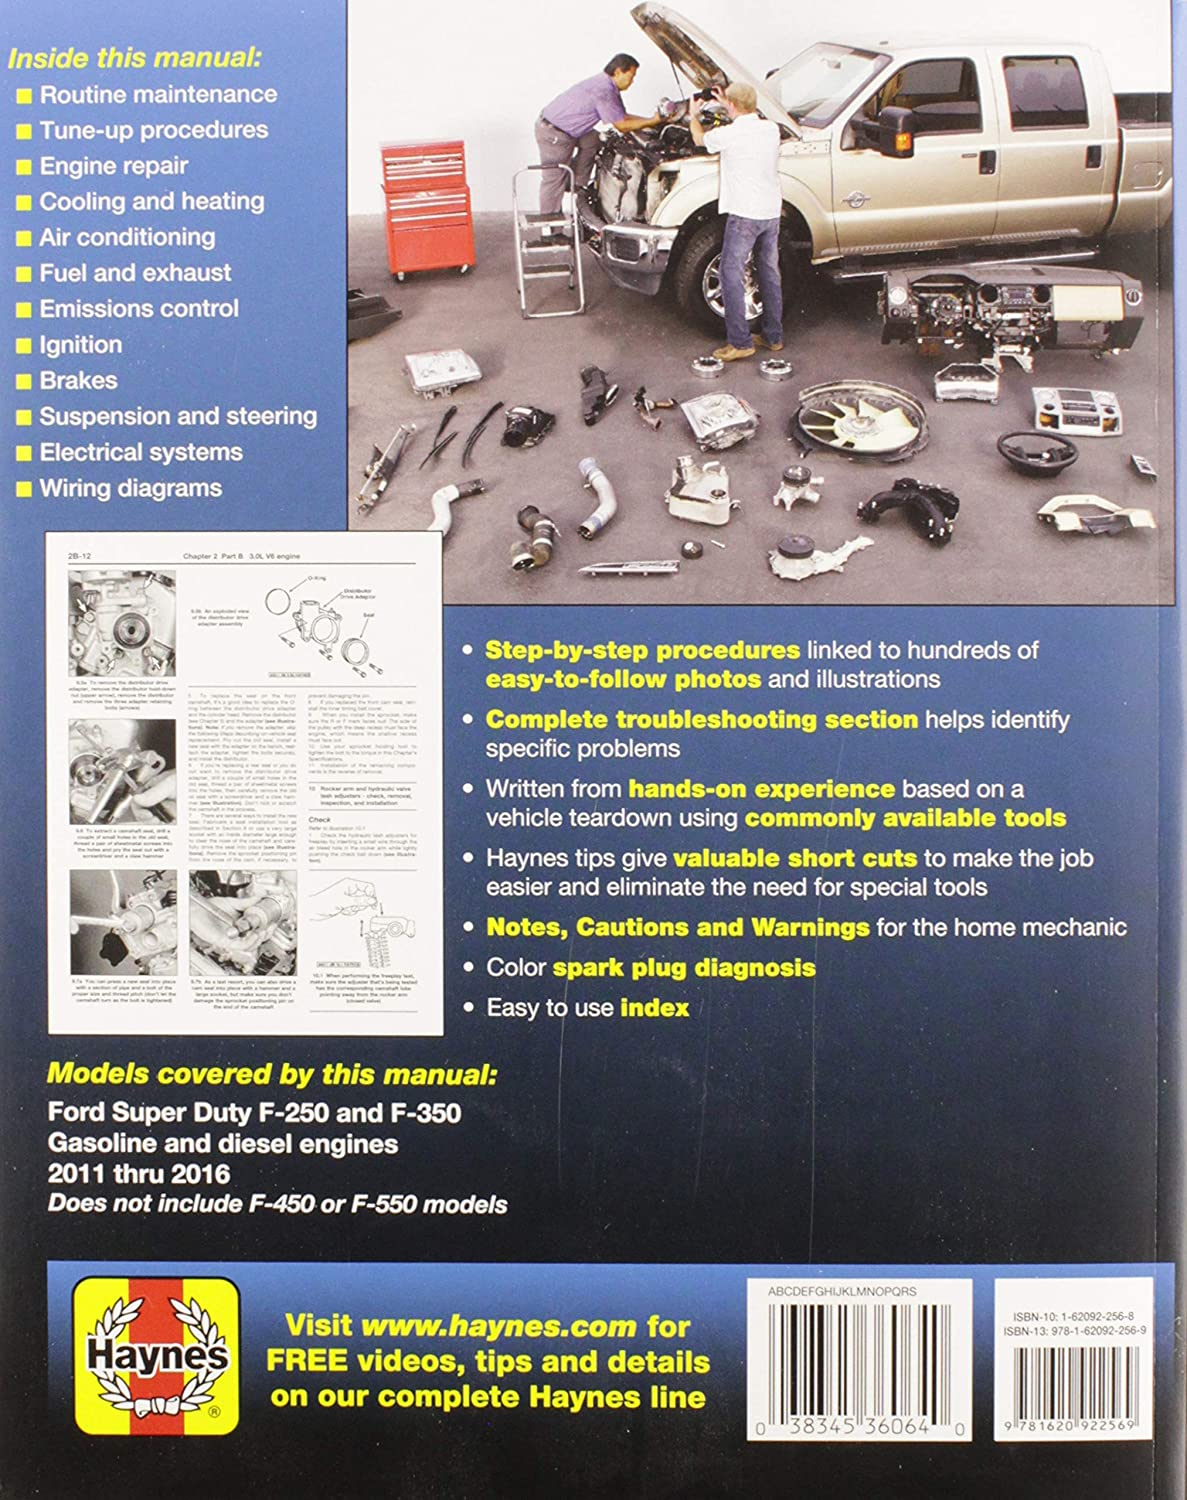 chilton ford manual online free